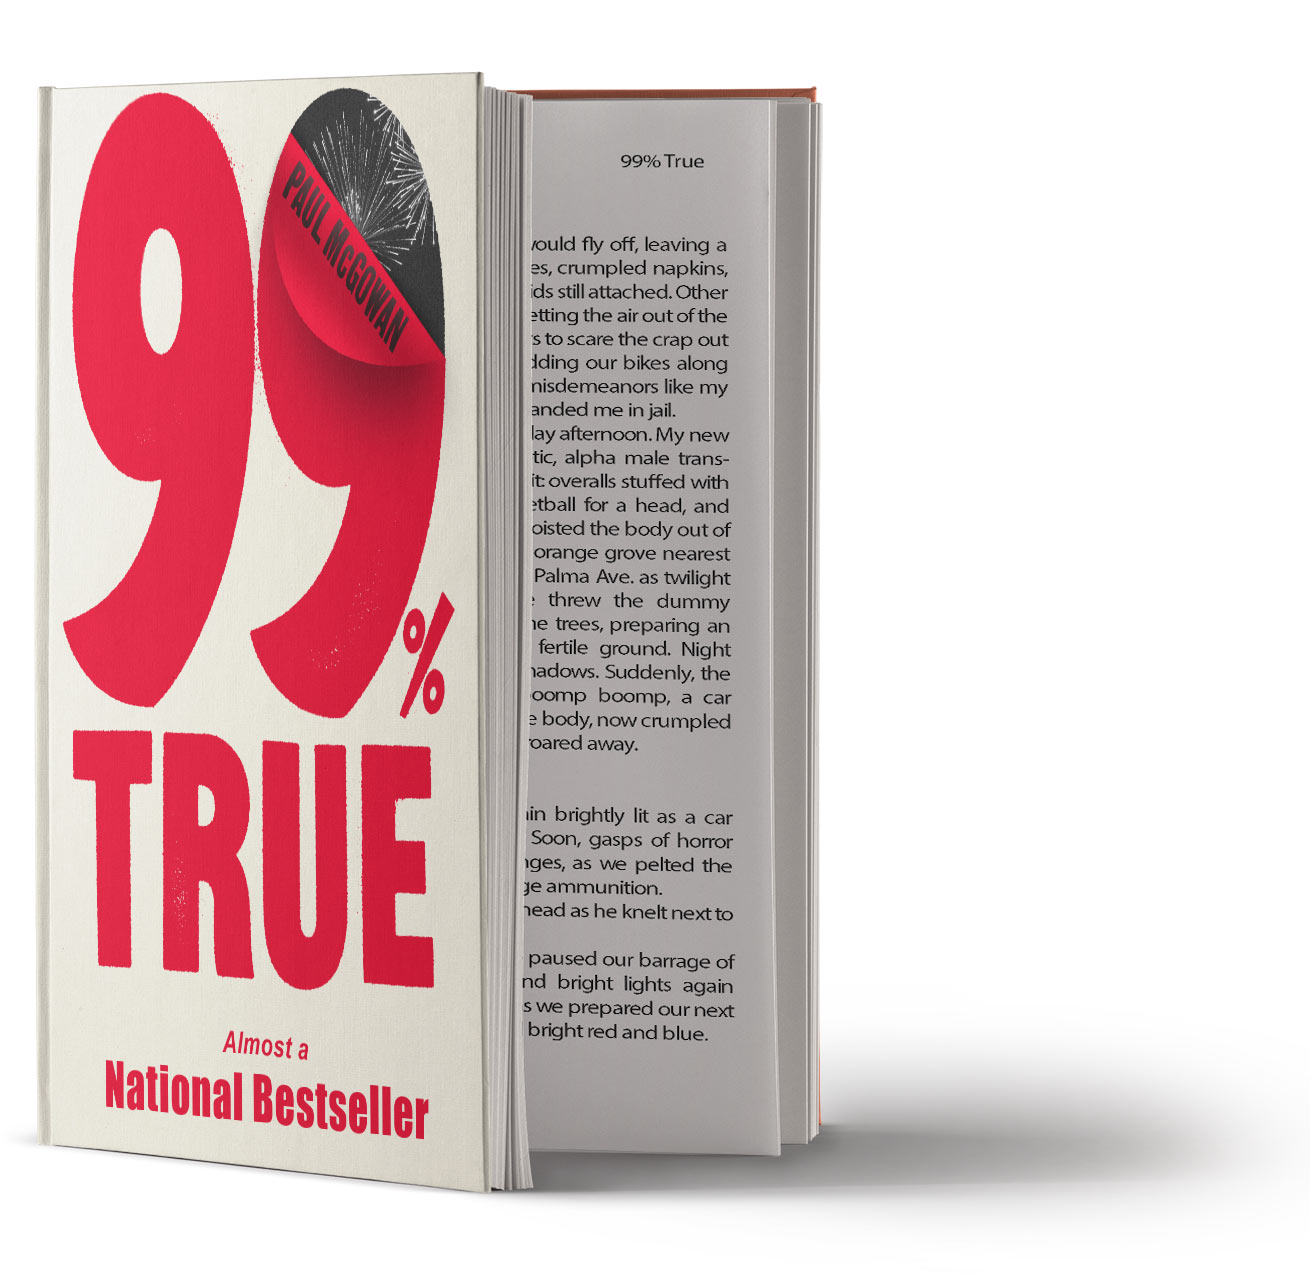 It's 99% True… - Paul McGowan tells all (and then some) in this riotous tale of misbegotten success that's 99% true in all the best ways. From his not-so-innocent youth growing up in the shadow of Disneyland and summer evenings in the innocent 1950s, to his dope-smoking, snake-eating, draft-dodging, loony-bin misadventure through Europe, to his struggles to build a thriving enterprise from a stack of dusty albums. Come enjoy funny bone laughs and heartrending stories as Paul tries to find his place in a worldwide community you never knew existed.